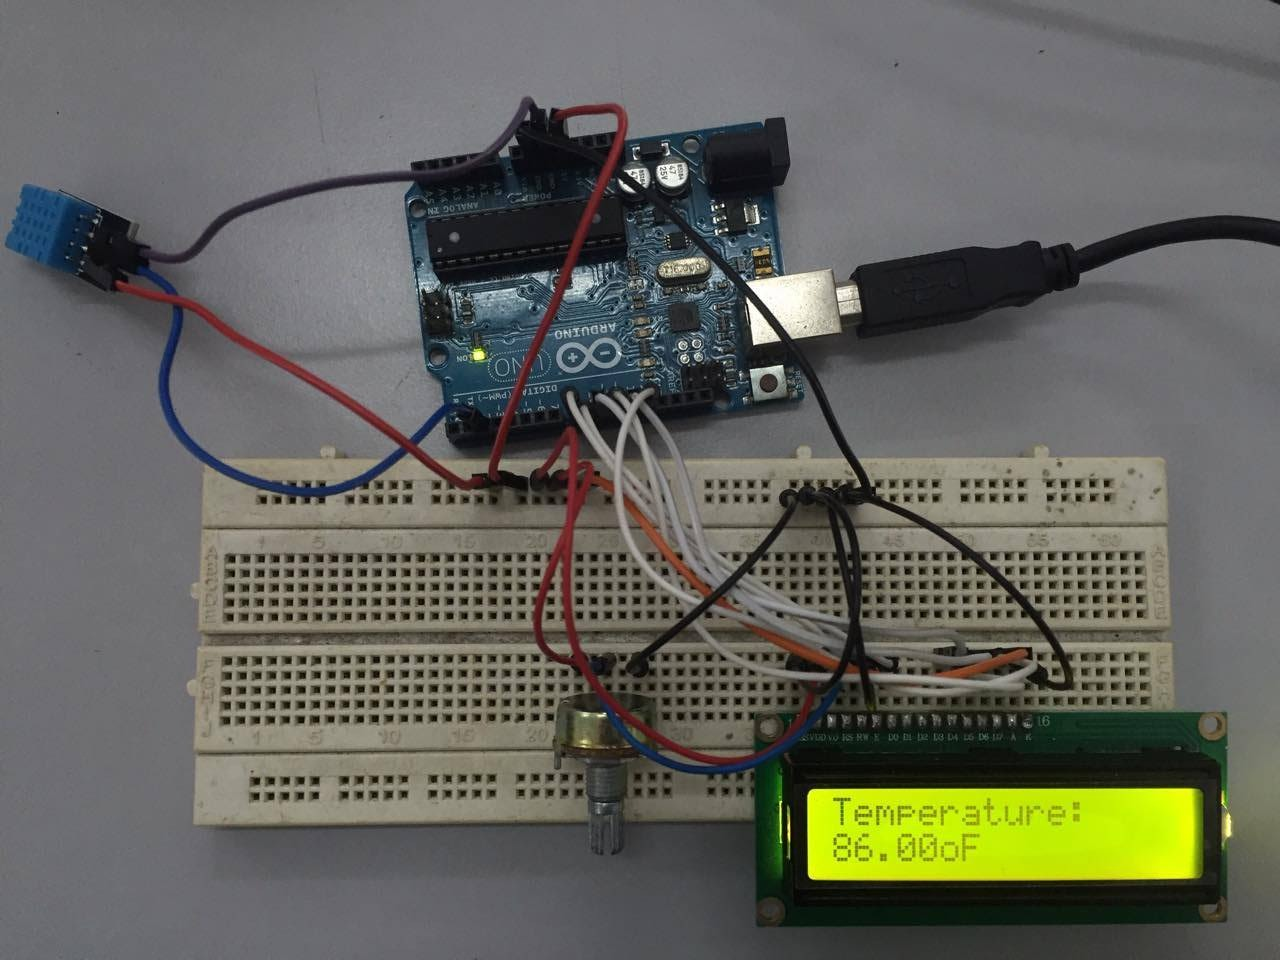 Picture of Measurements Shown on LCD Screen